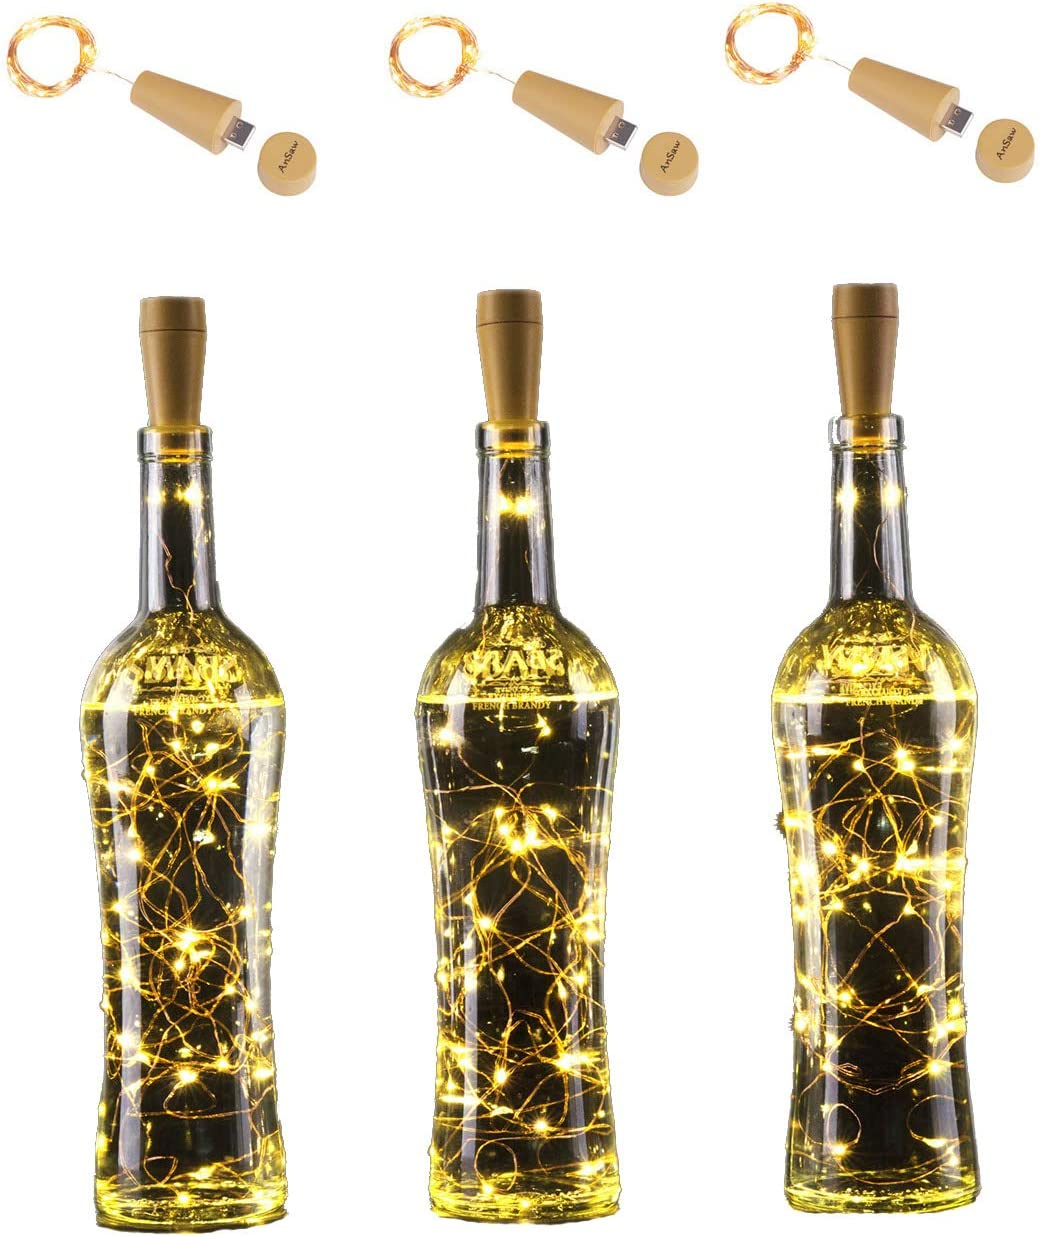 Rechargeable Wine Bottle String Lights , AnSaw 3 Pack USB Powered 20LED Bottle Cork Lights Starry Fairy Home Twinkle Cork Shape Decor Lights for Party , Christmas, Halloween ,Wedding (Warm White)